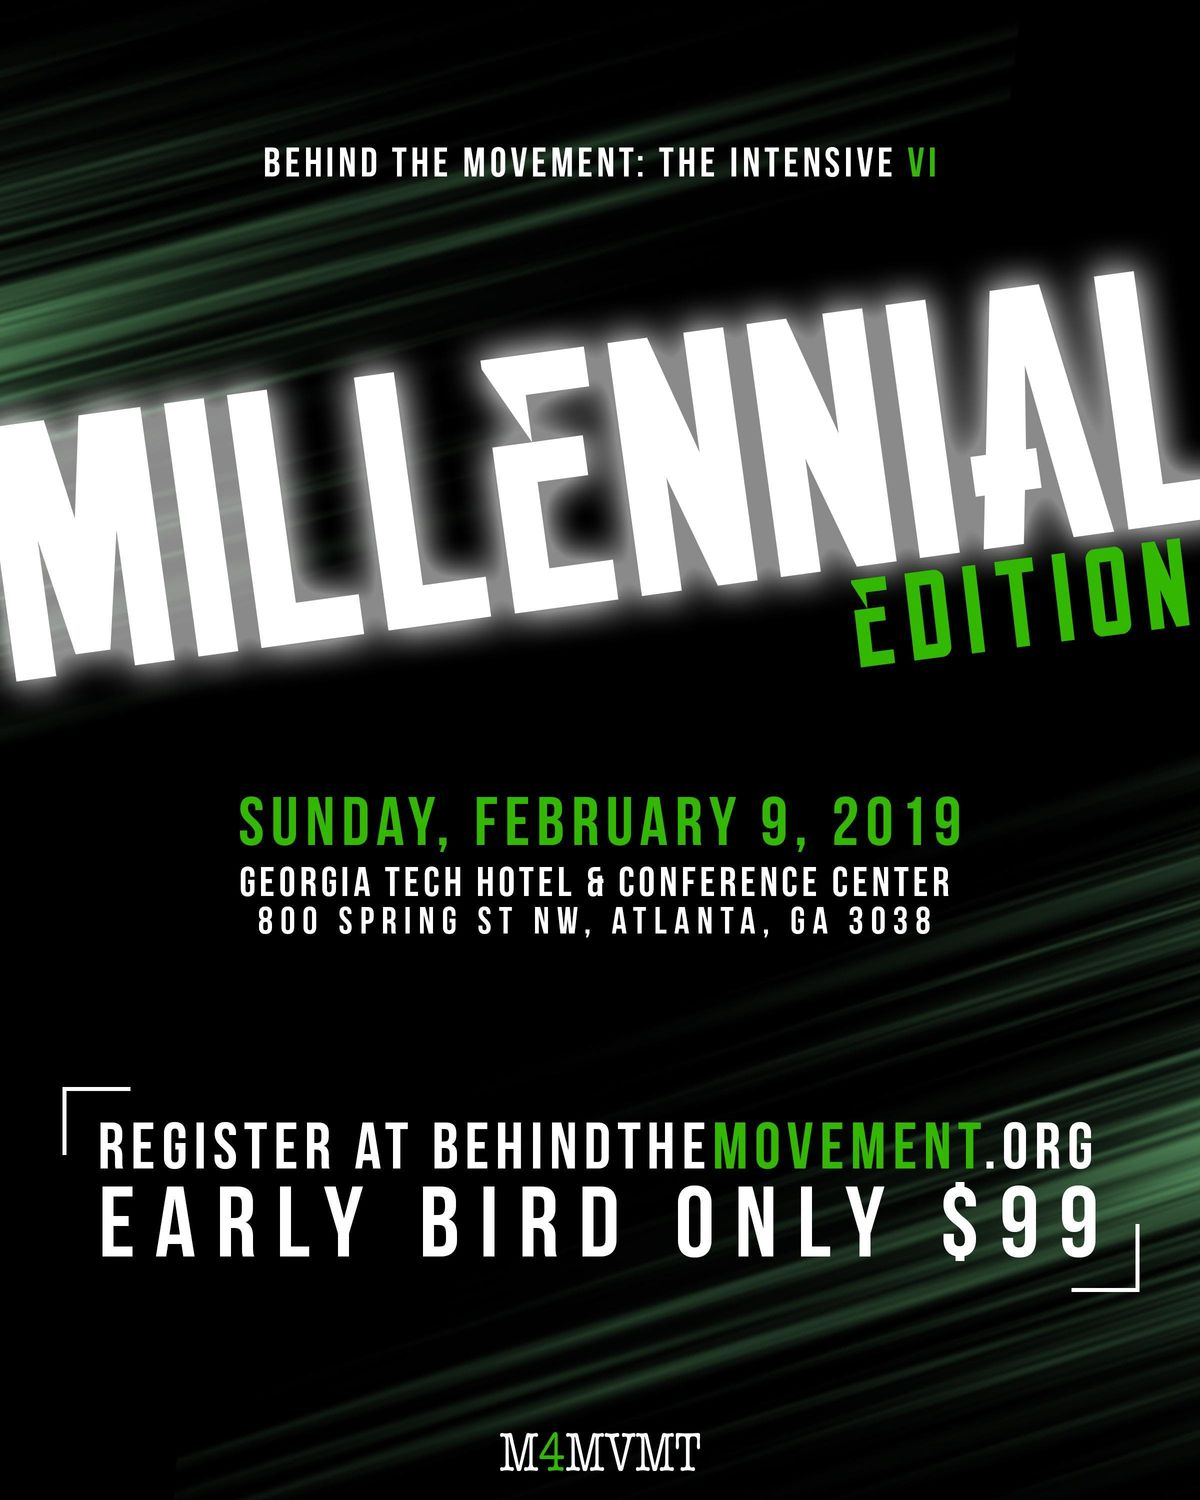 Behind The Movement The Intensive Part VI Millennial Edition